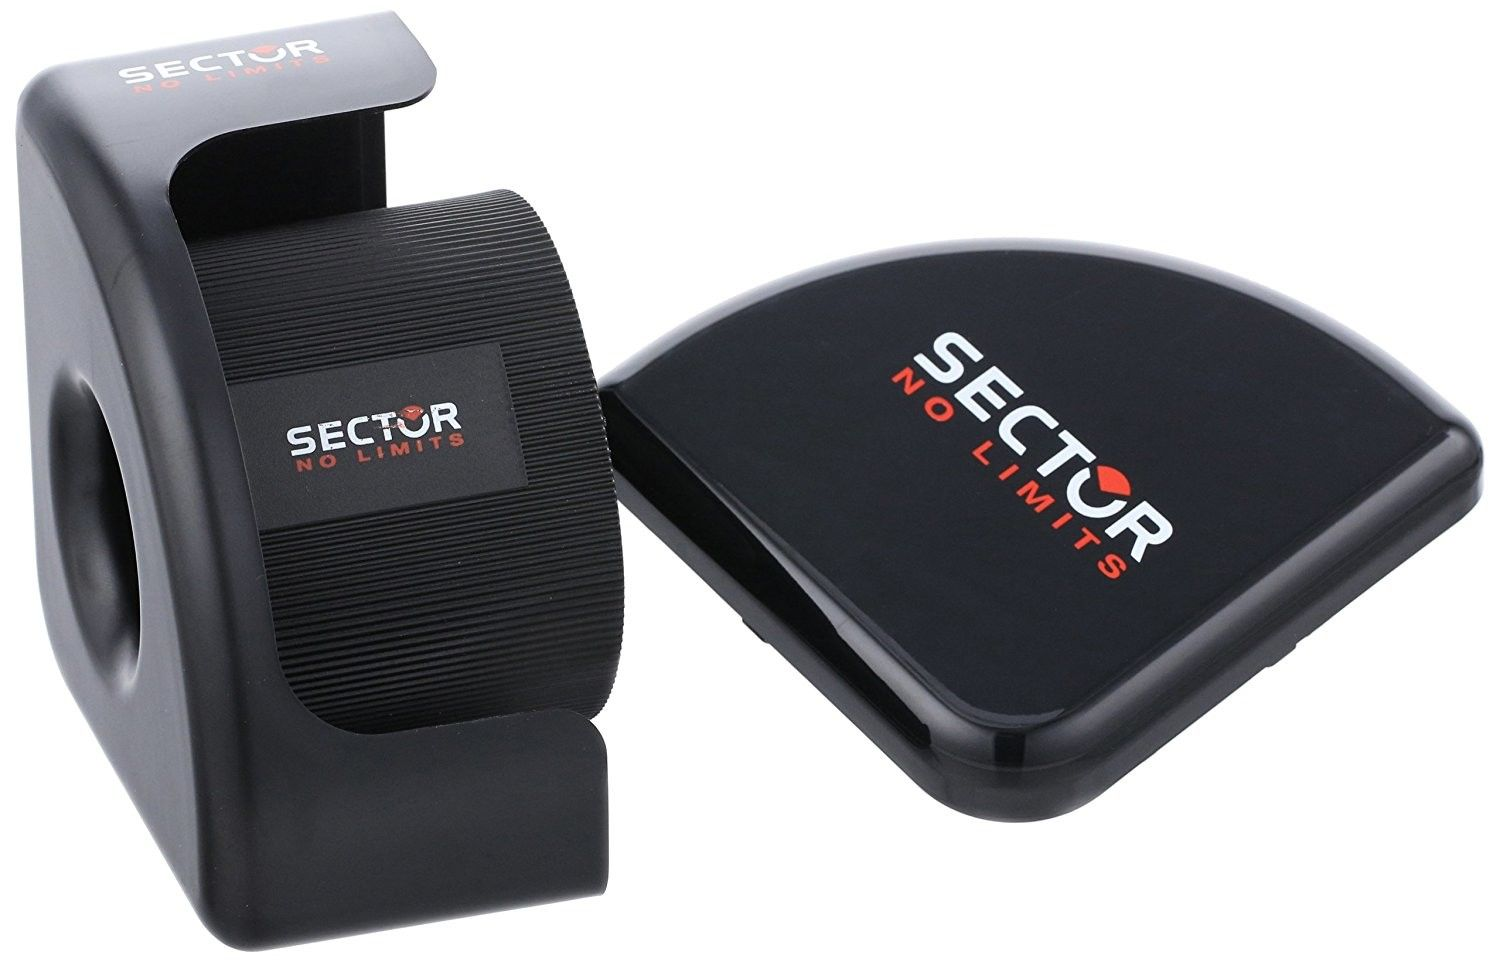 Sector No Limits 250 ref. R3251161503